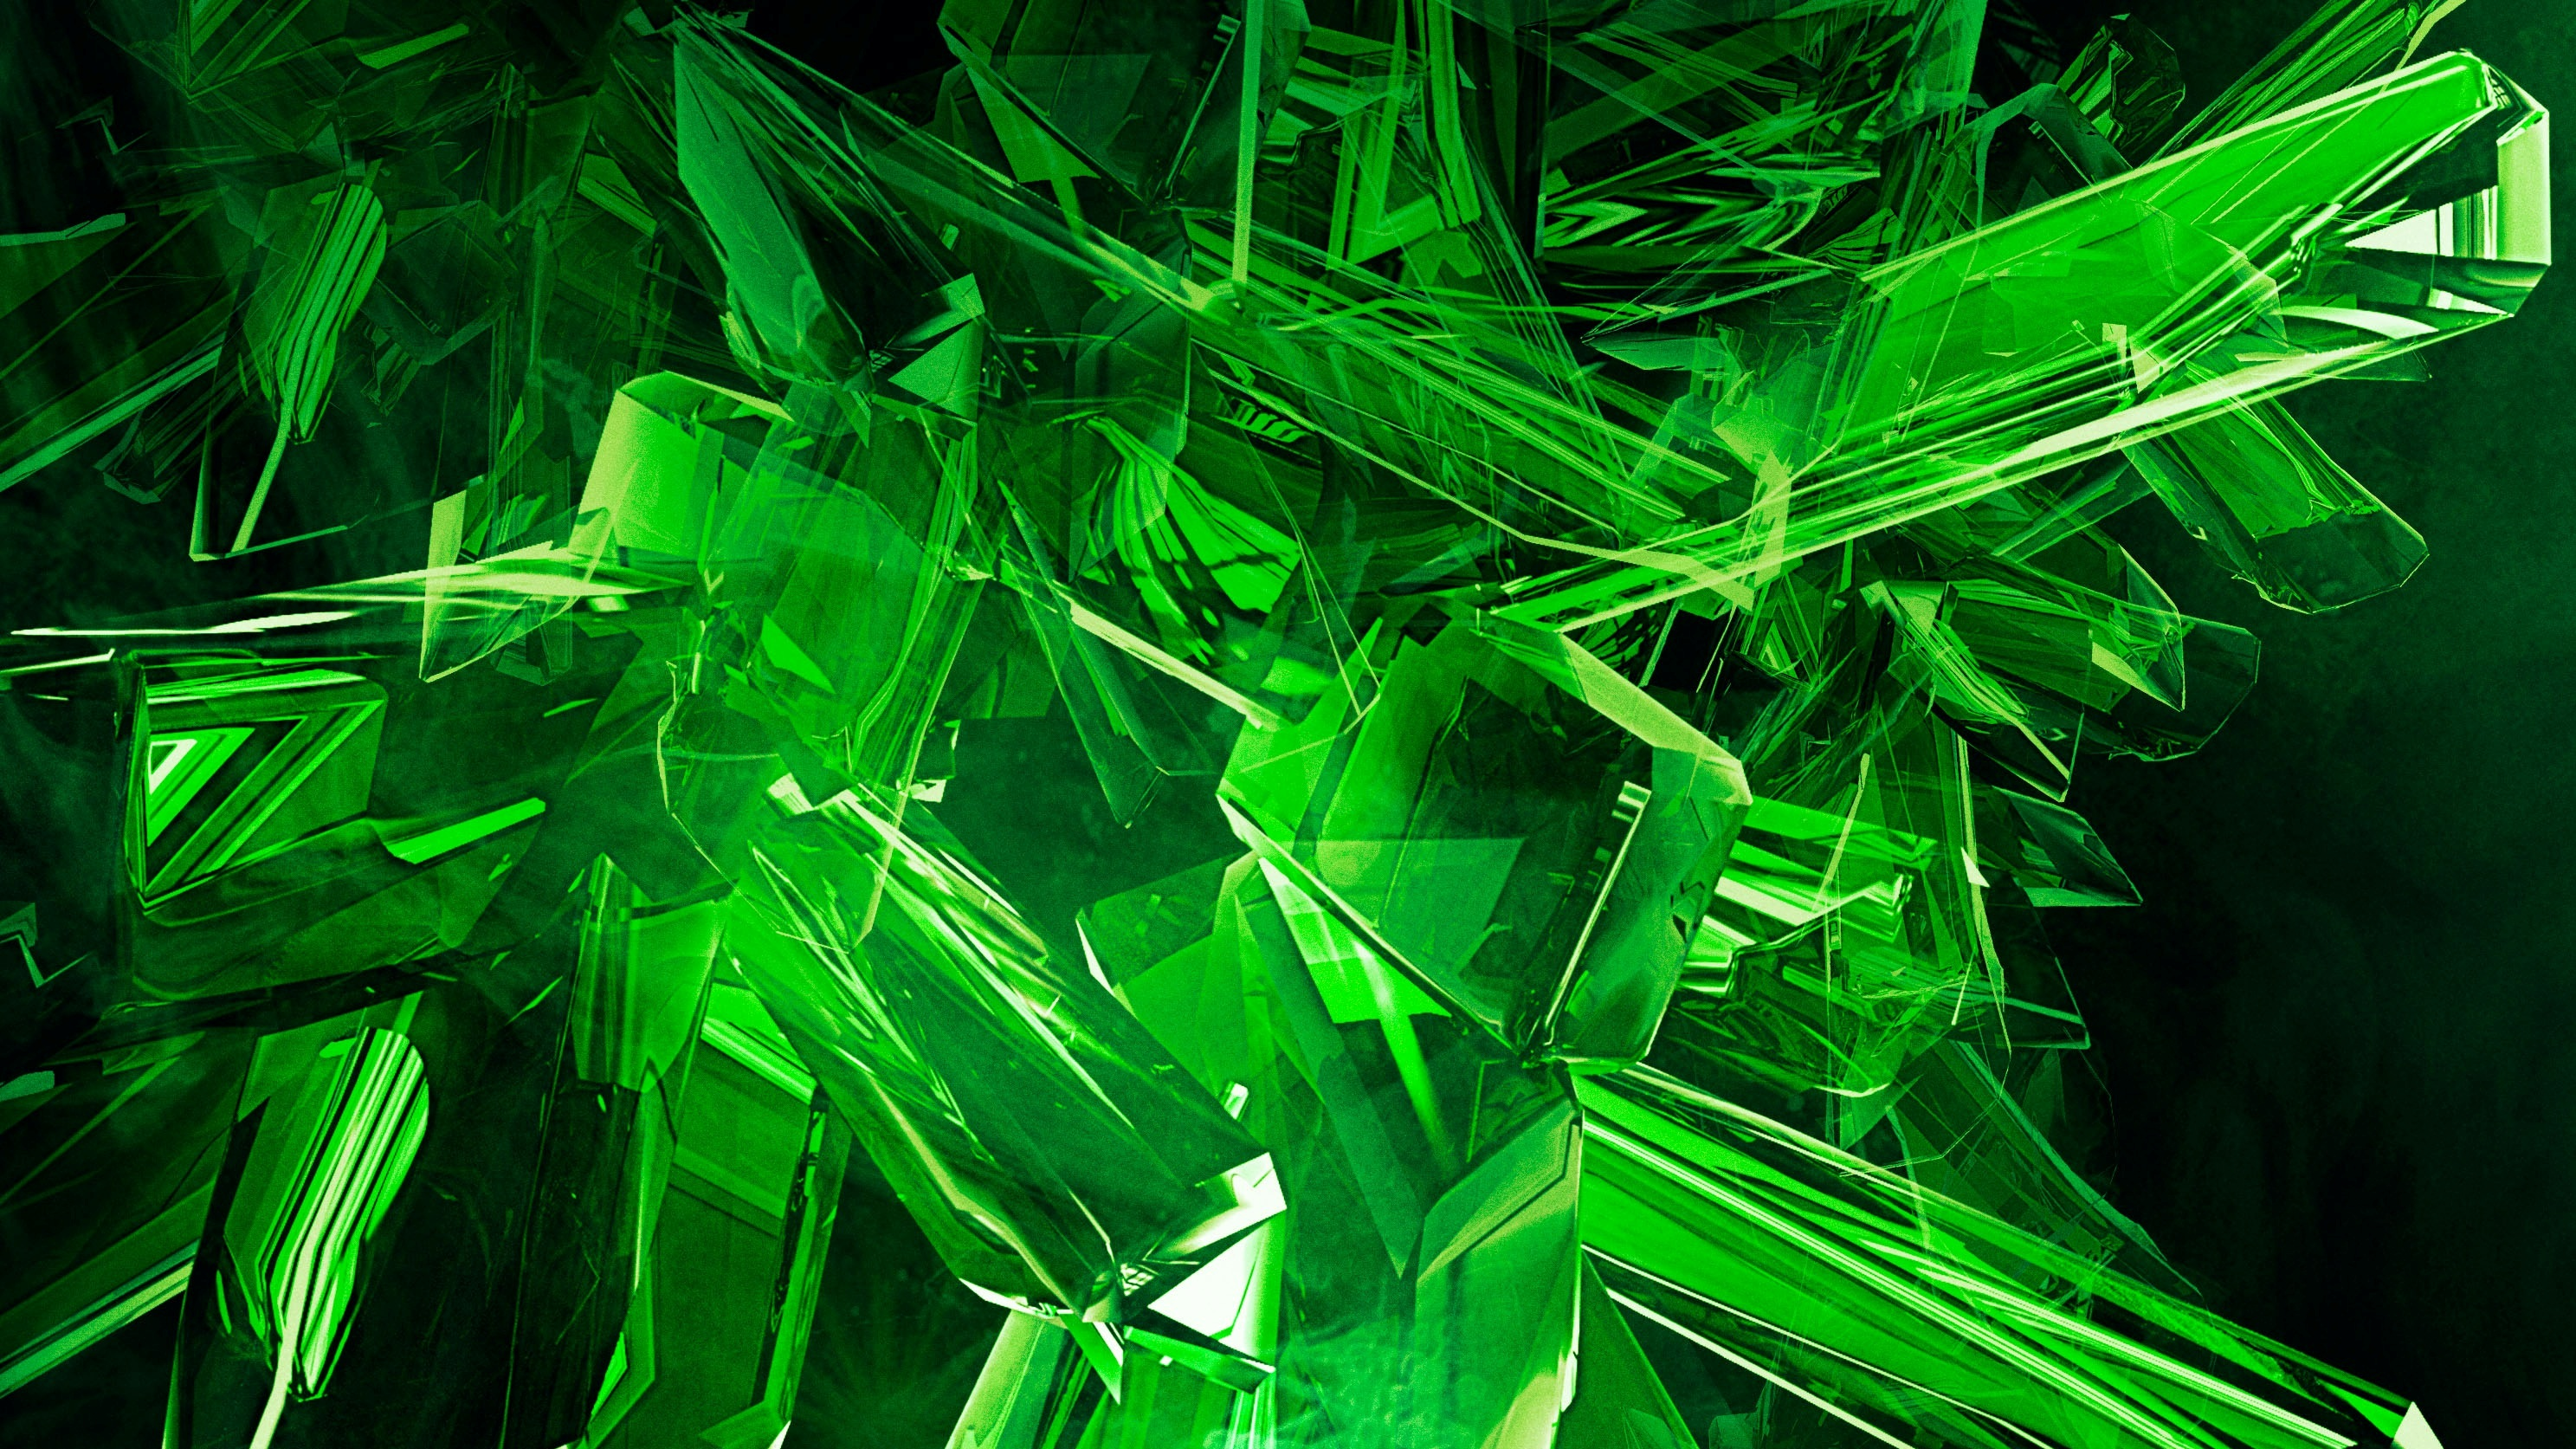 Cool green wallpaper   Cool wallpapers   Cool hd   Cool wallpapers hd 2975x1673